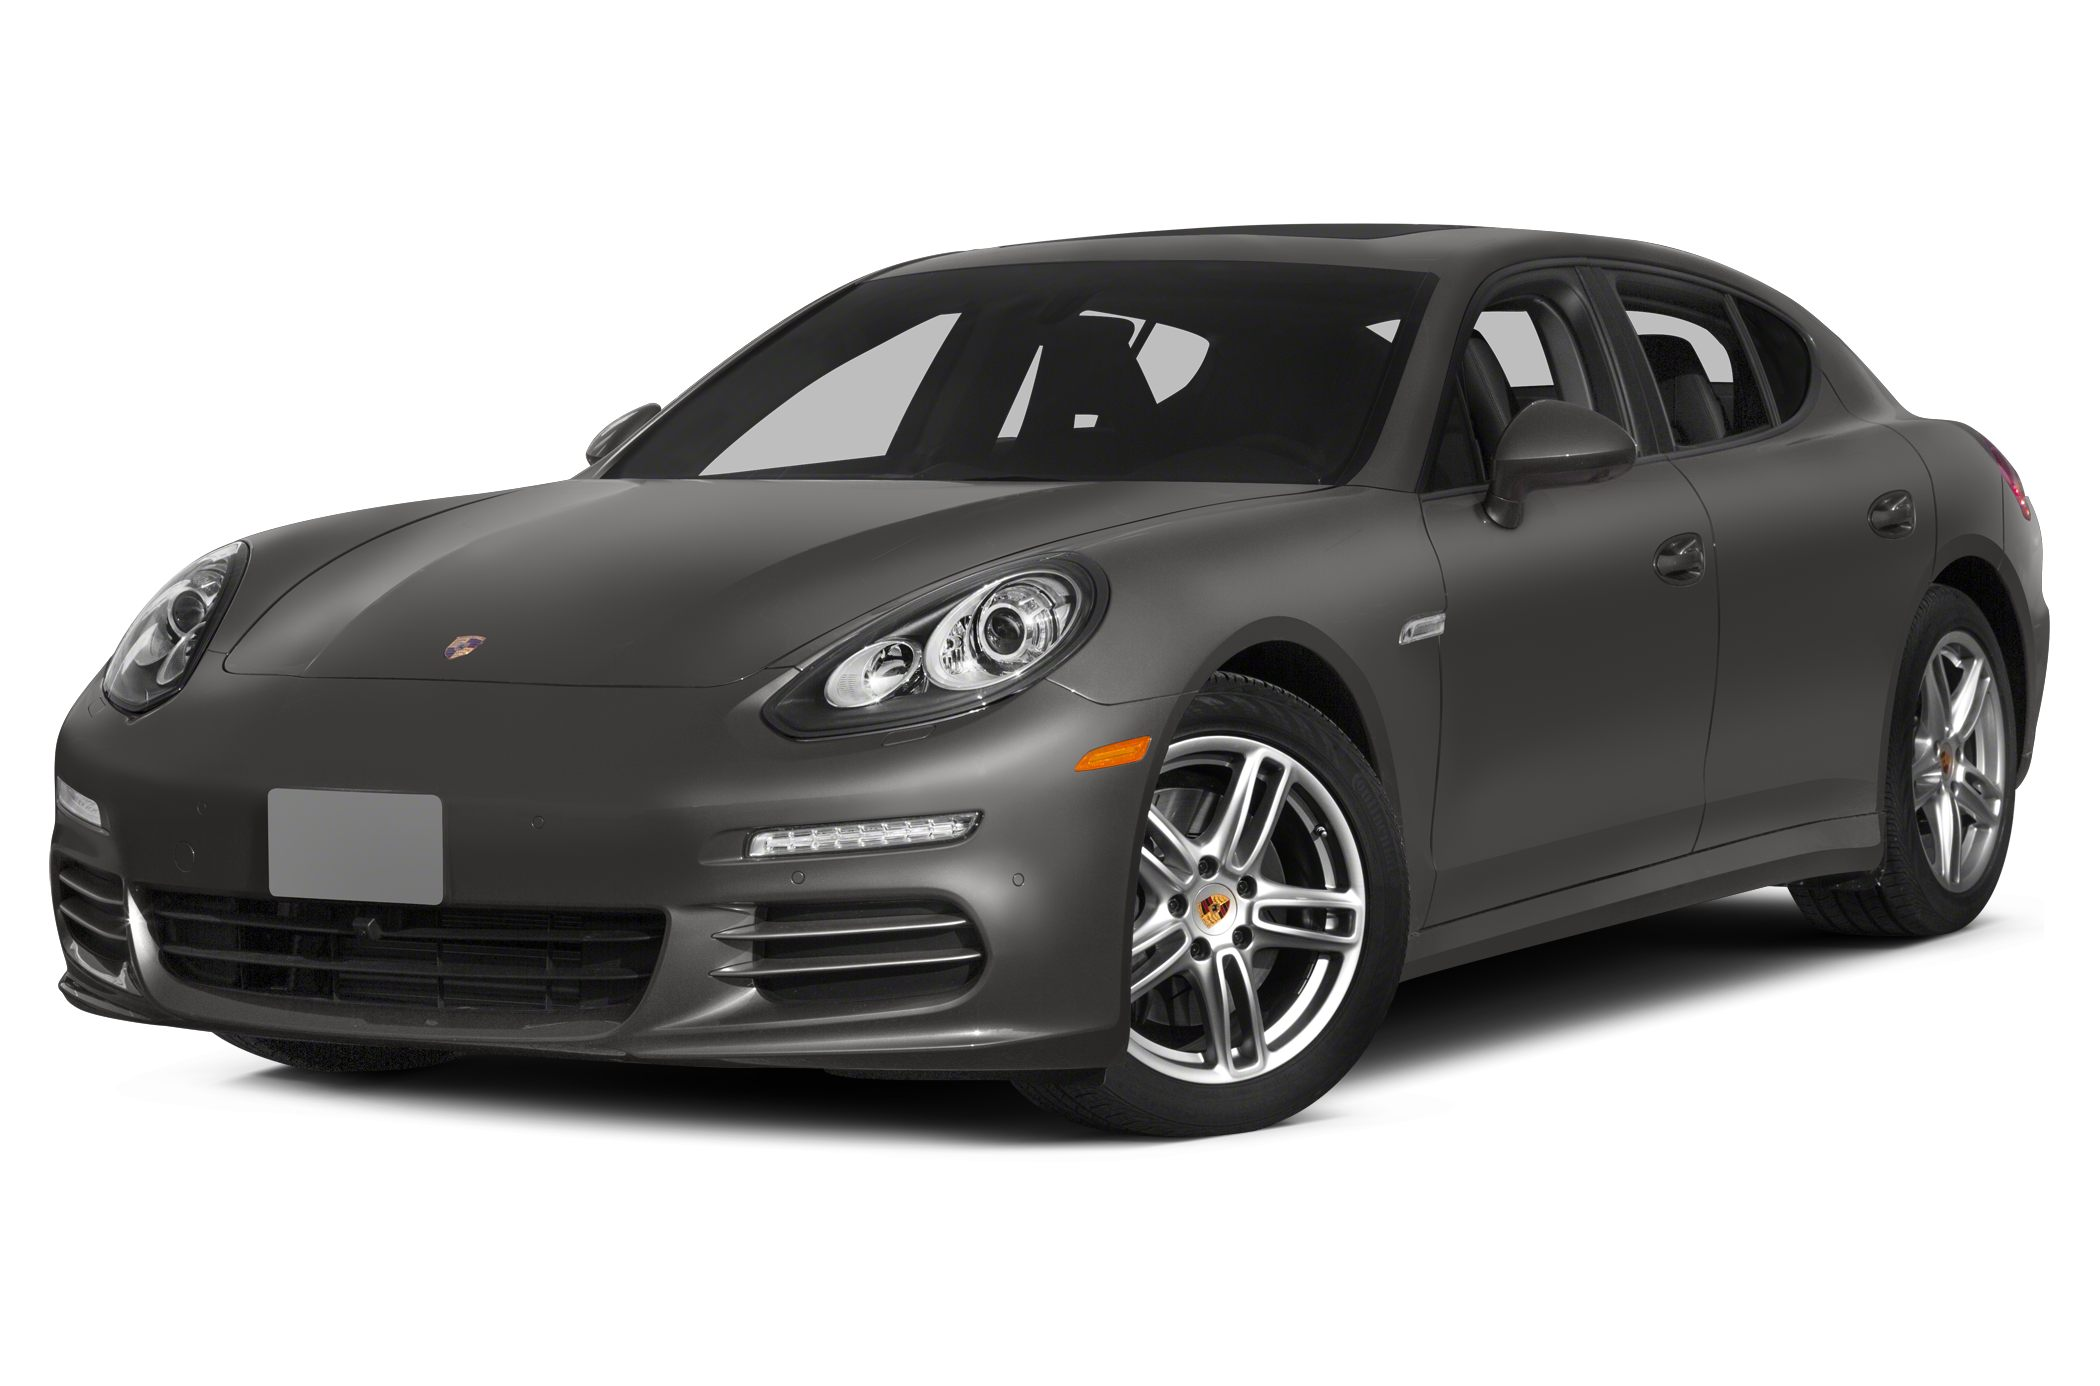 2015 Porsche Panamera 4S Hatchback for sale in Roslyn Heights for $0 with 11 miles